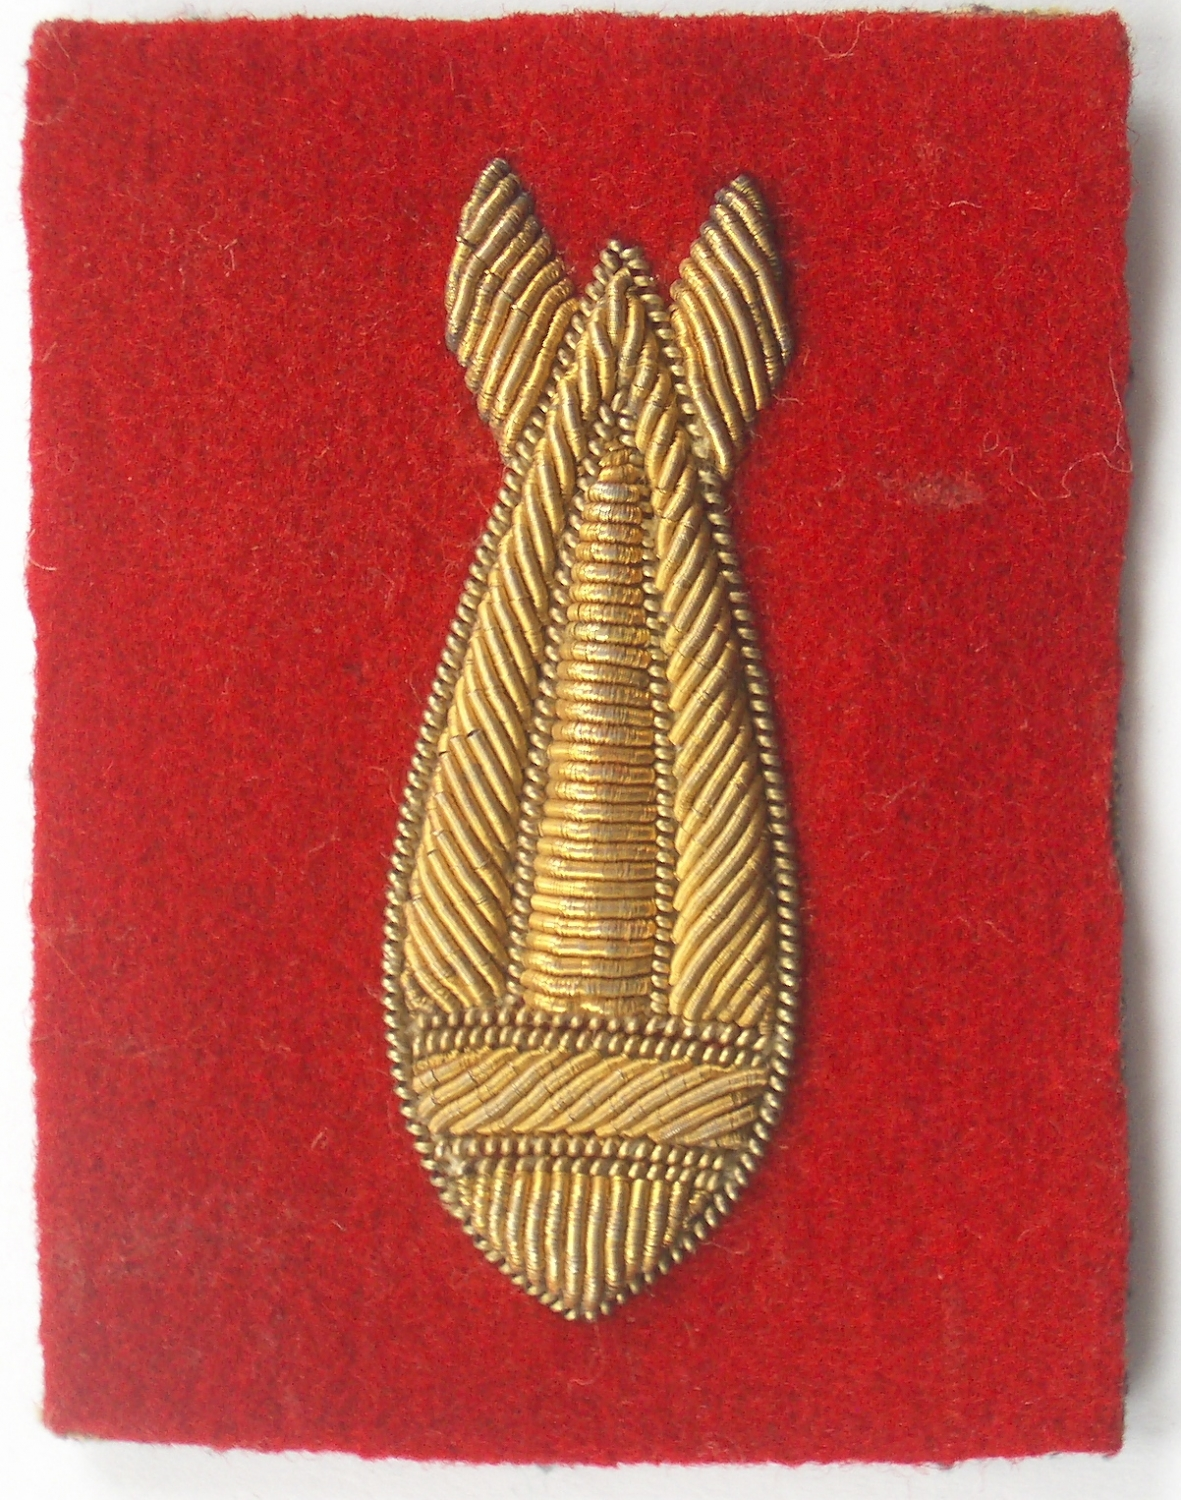 Bomb Disposal bullion sleeve badge